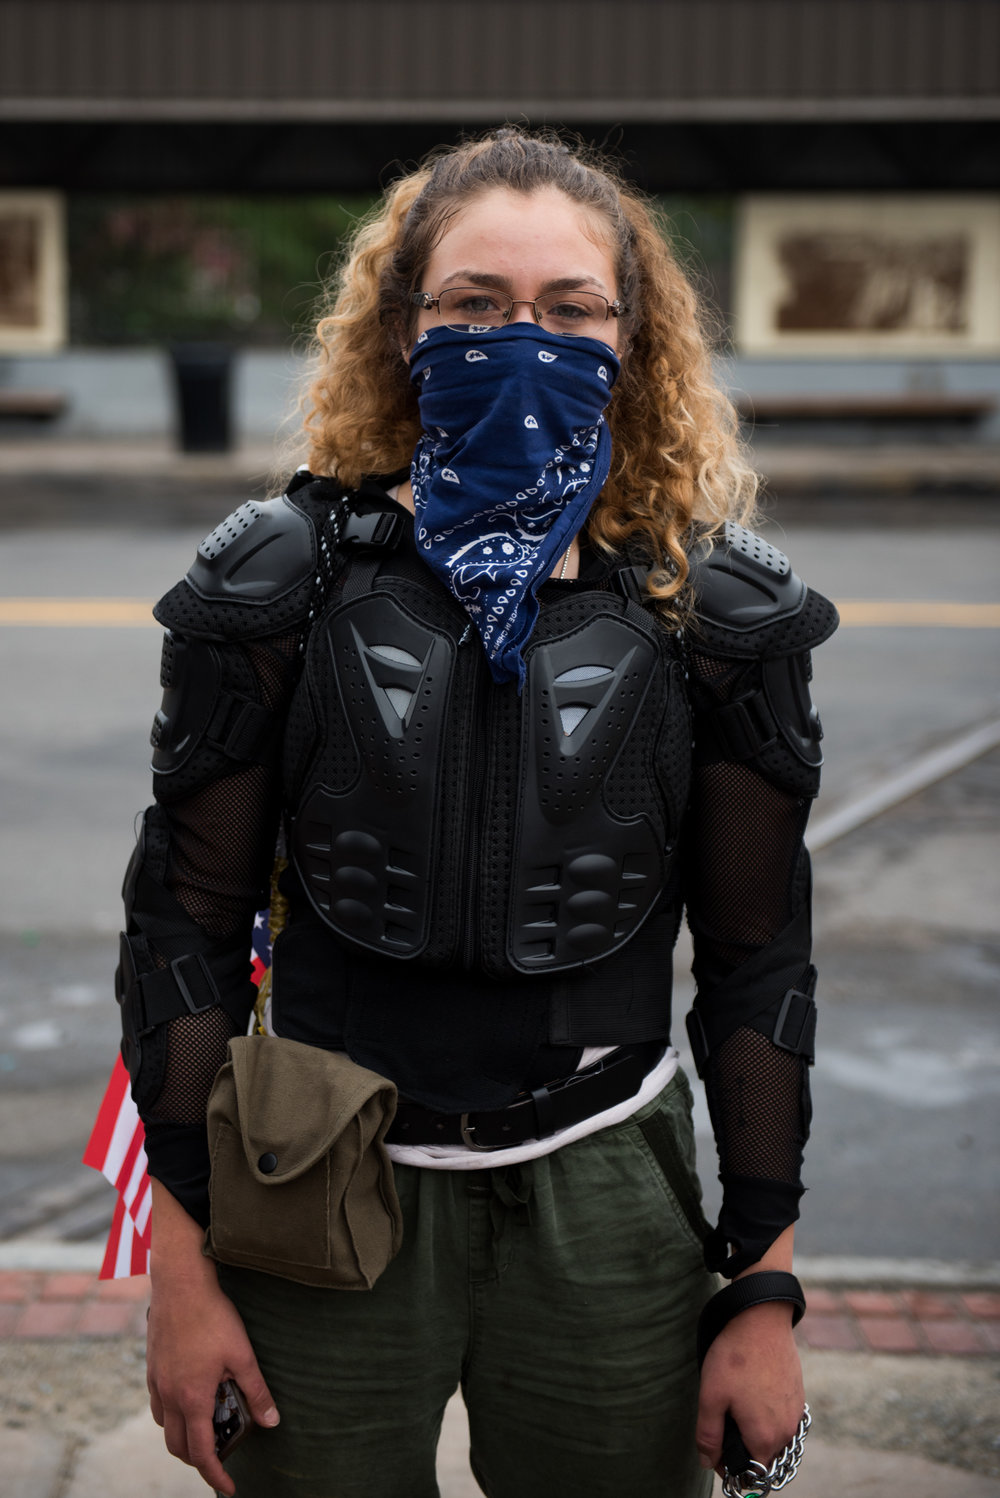 Boston, MA - 8/19/17 - Aylin who declined to give her last name poses for a portrait before a march from Roxbury to the Boston Common as part of a counter-protest to a free speech rally being held there on Saturday, August 19, 2017. This day's protest occurred as part of the ongoing national outrage after protests in Charlottesville, Virginia turned deadly last weekend, primarily in opposition to what's seen as a rise in prominence and visibility of white supremacists and Neo-Nazis. (Nicholas Pfosi for The Boston Globe) Topic: 20rally photos (only)